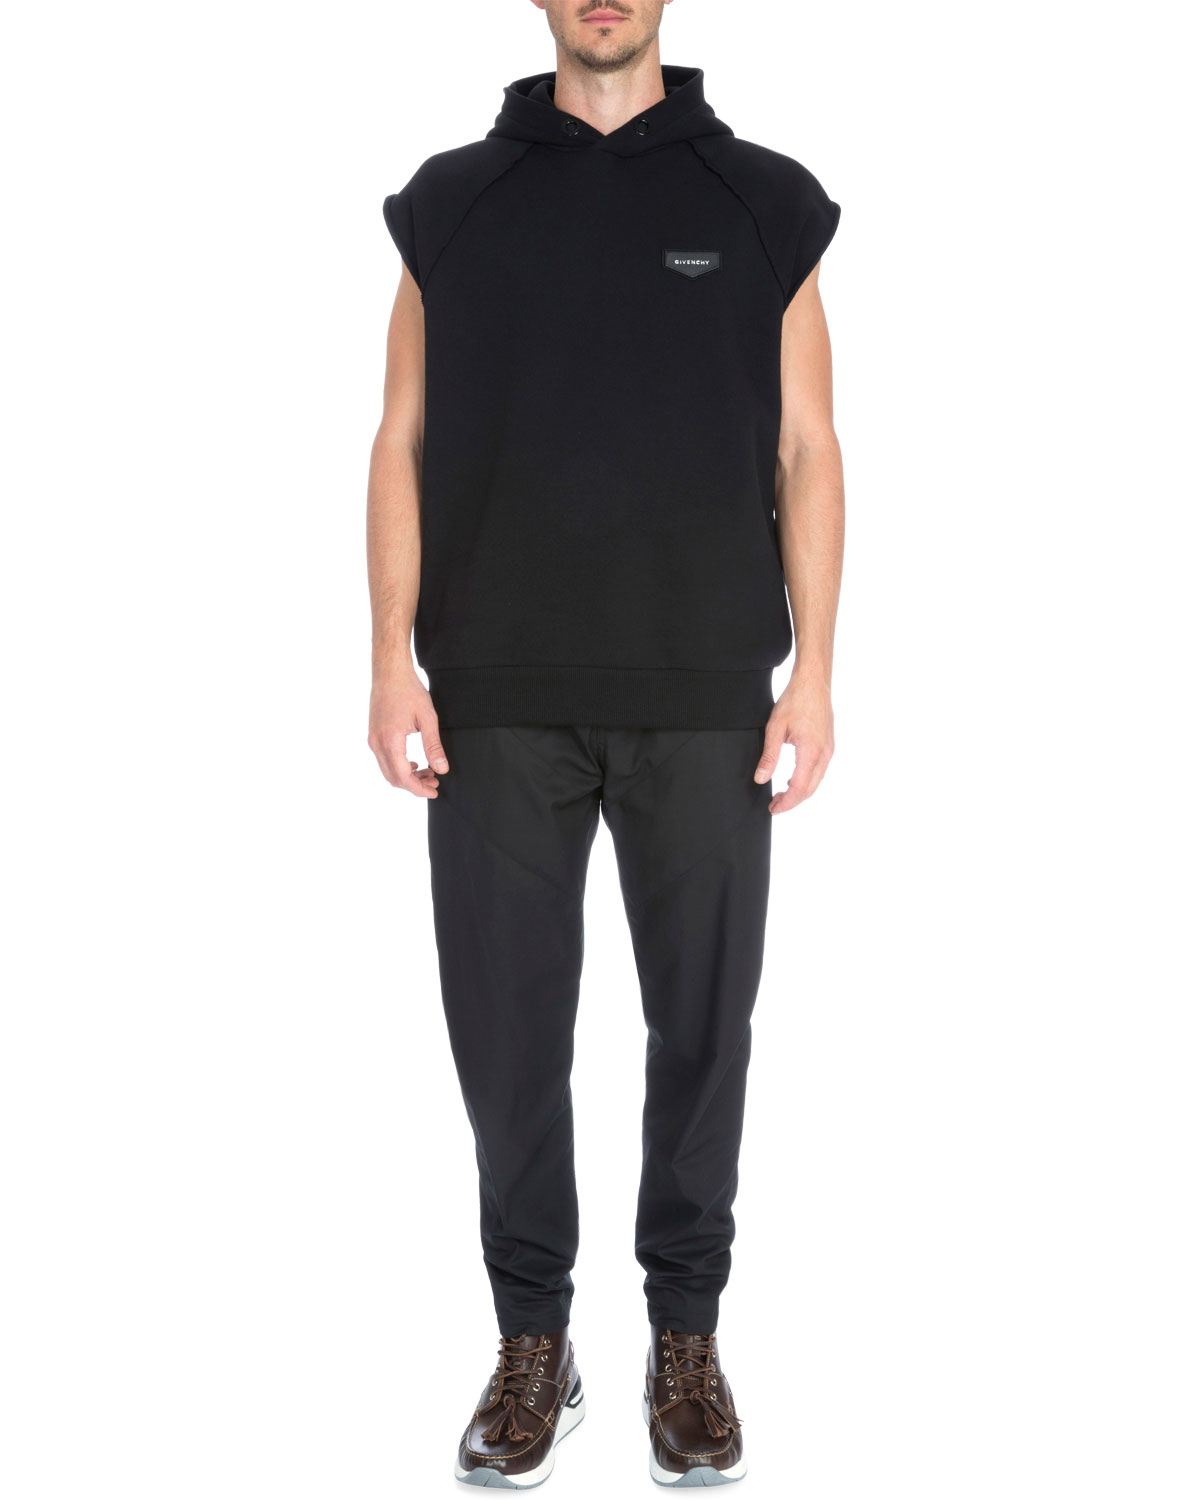 givenchy sleeveless hooded pullover sweater in black for men lyst. Black Bedroom Furniture Sets. Home Design Ideas